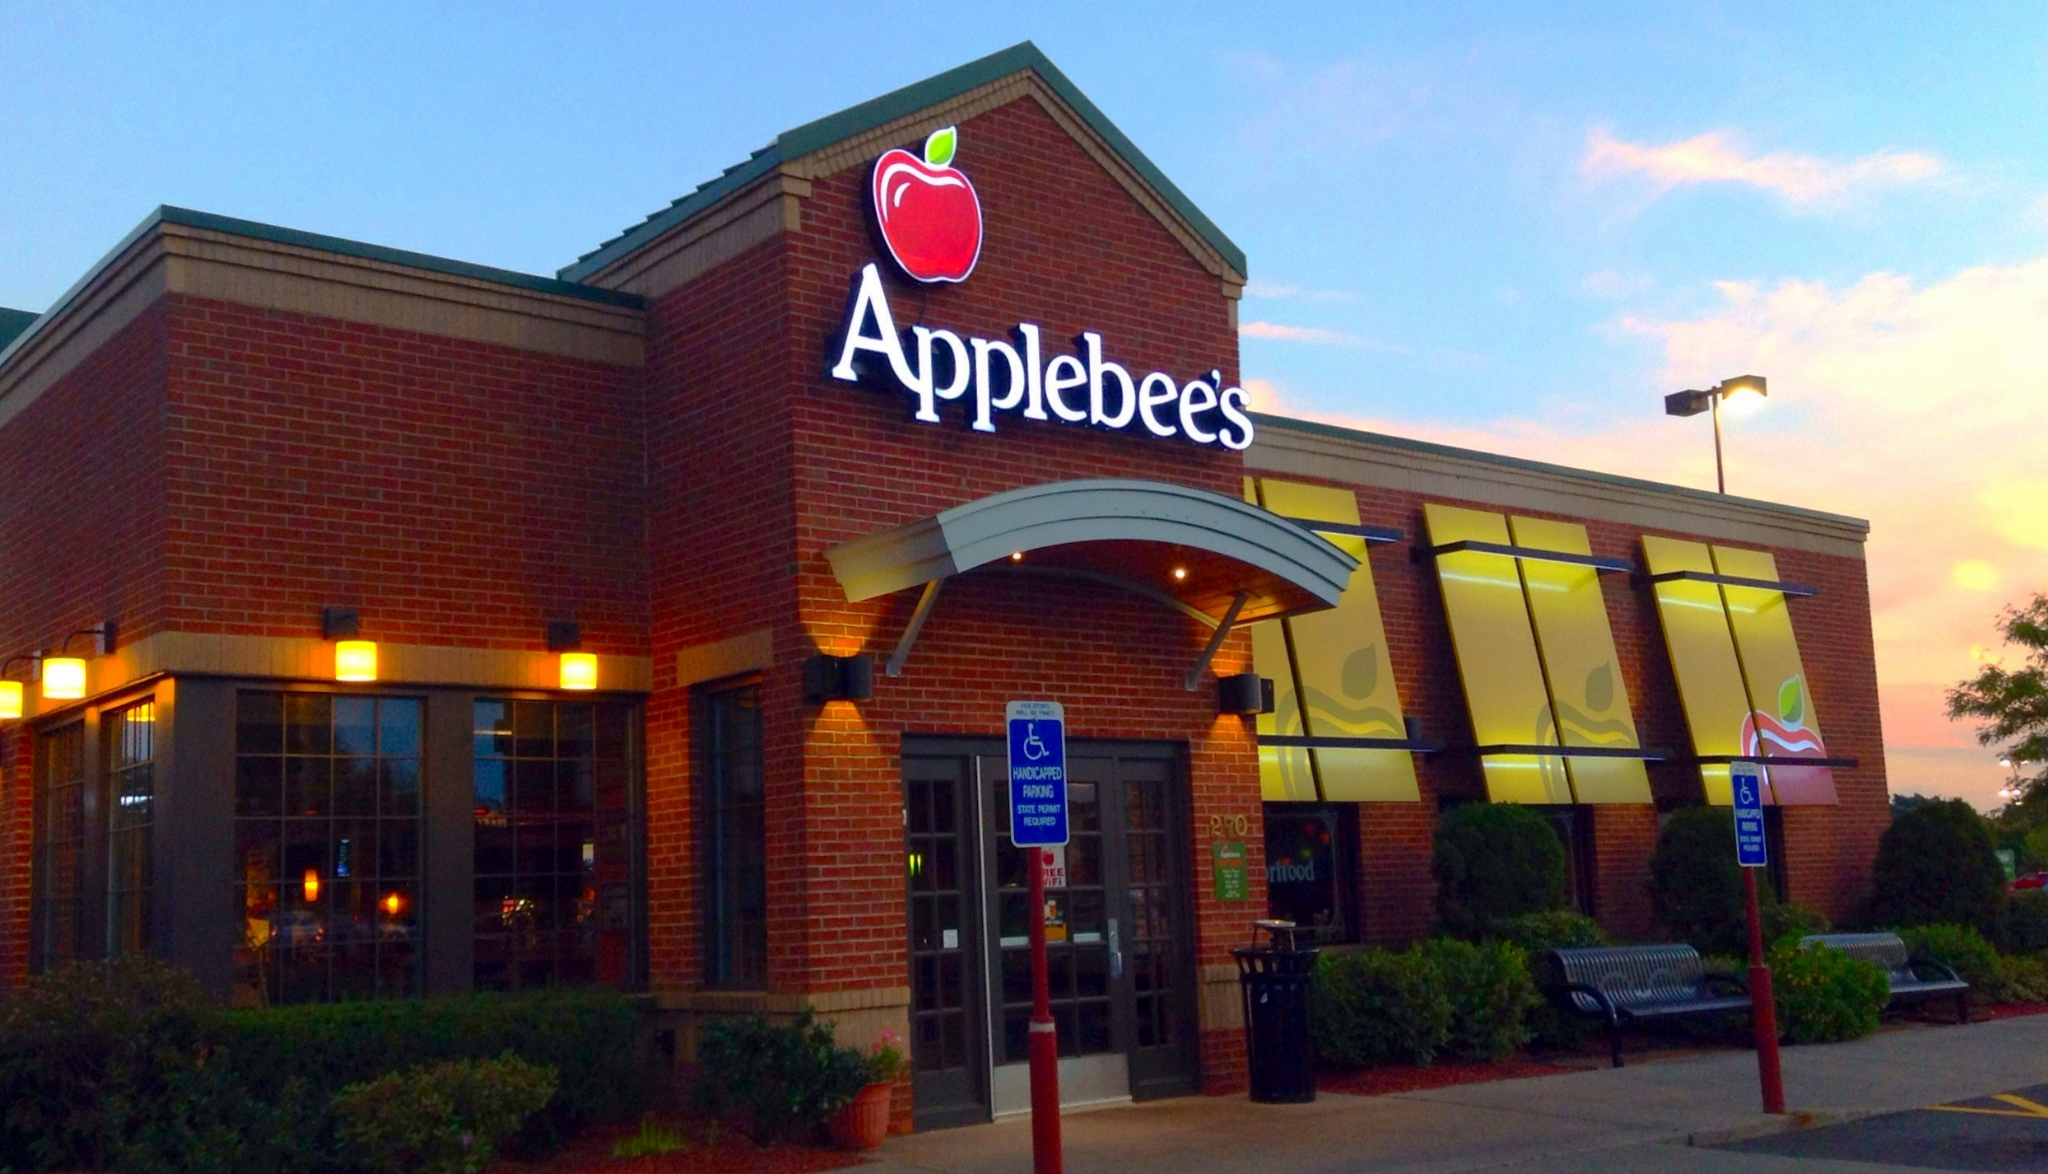 Awful Restaurant Diner Assaults Applebee's Customer for Speaking Swahili